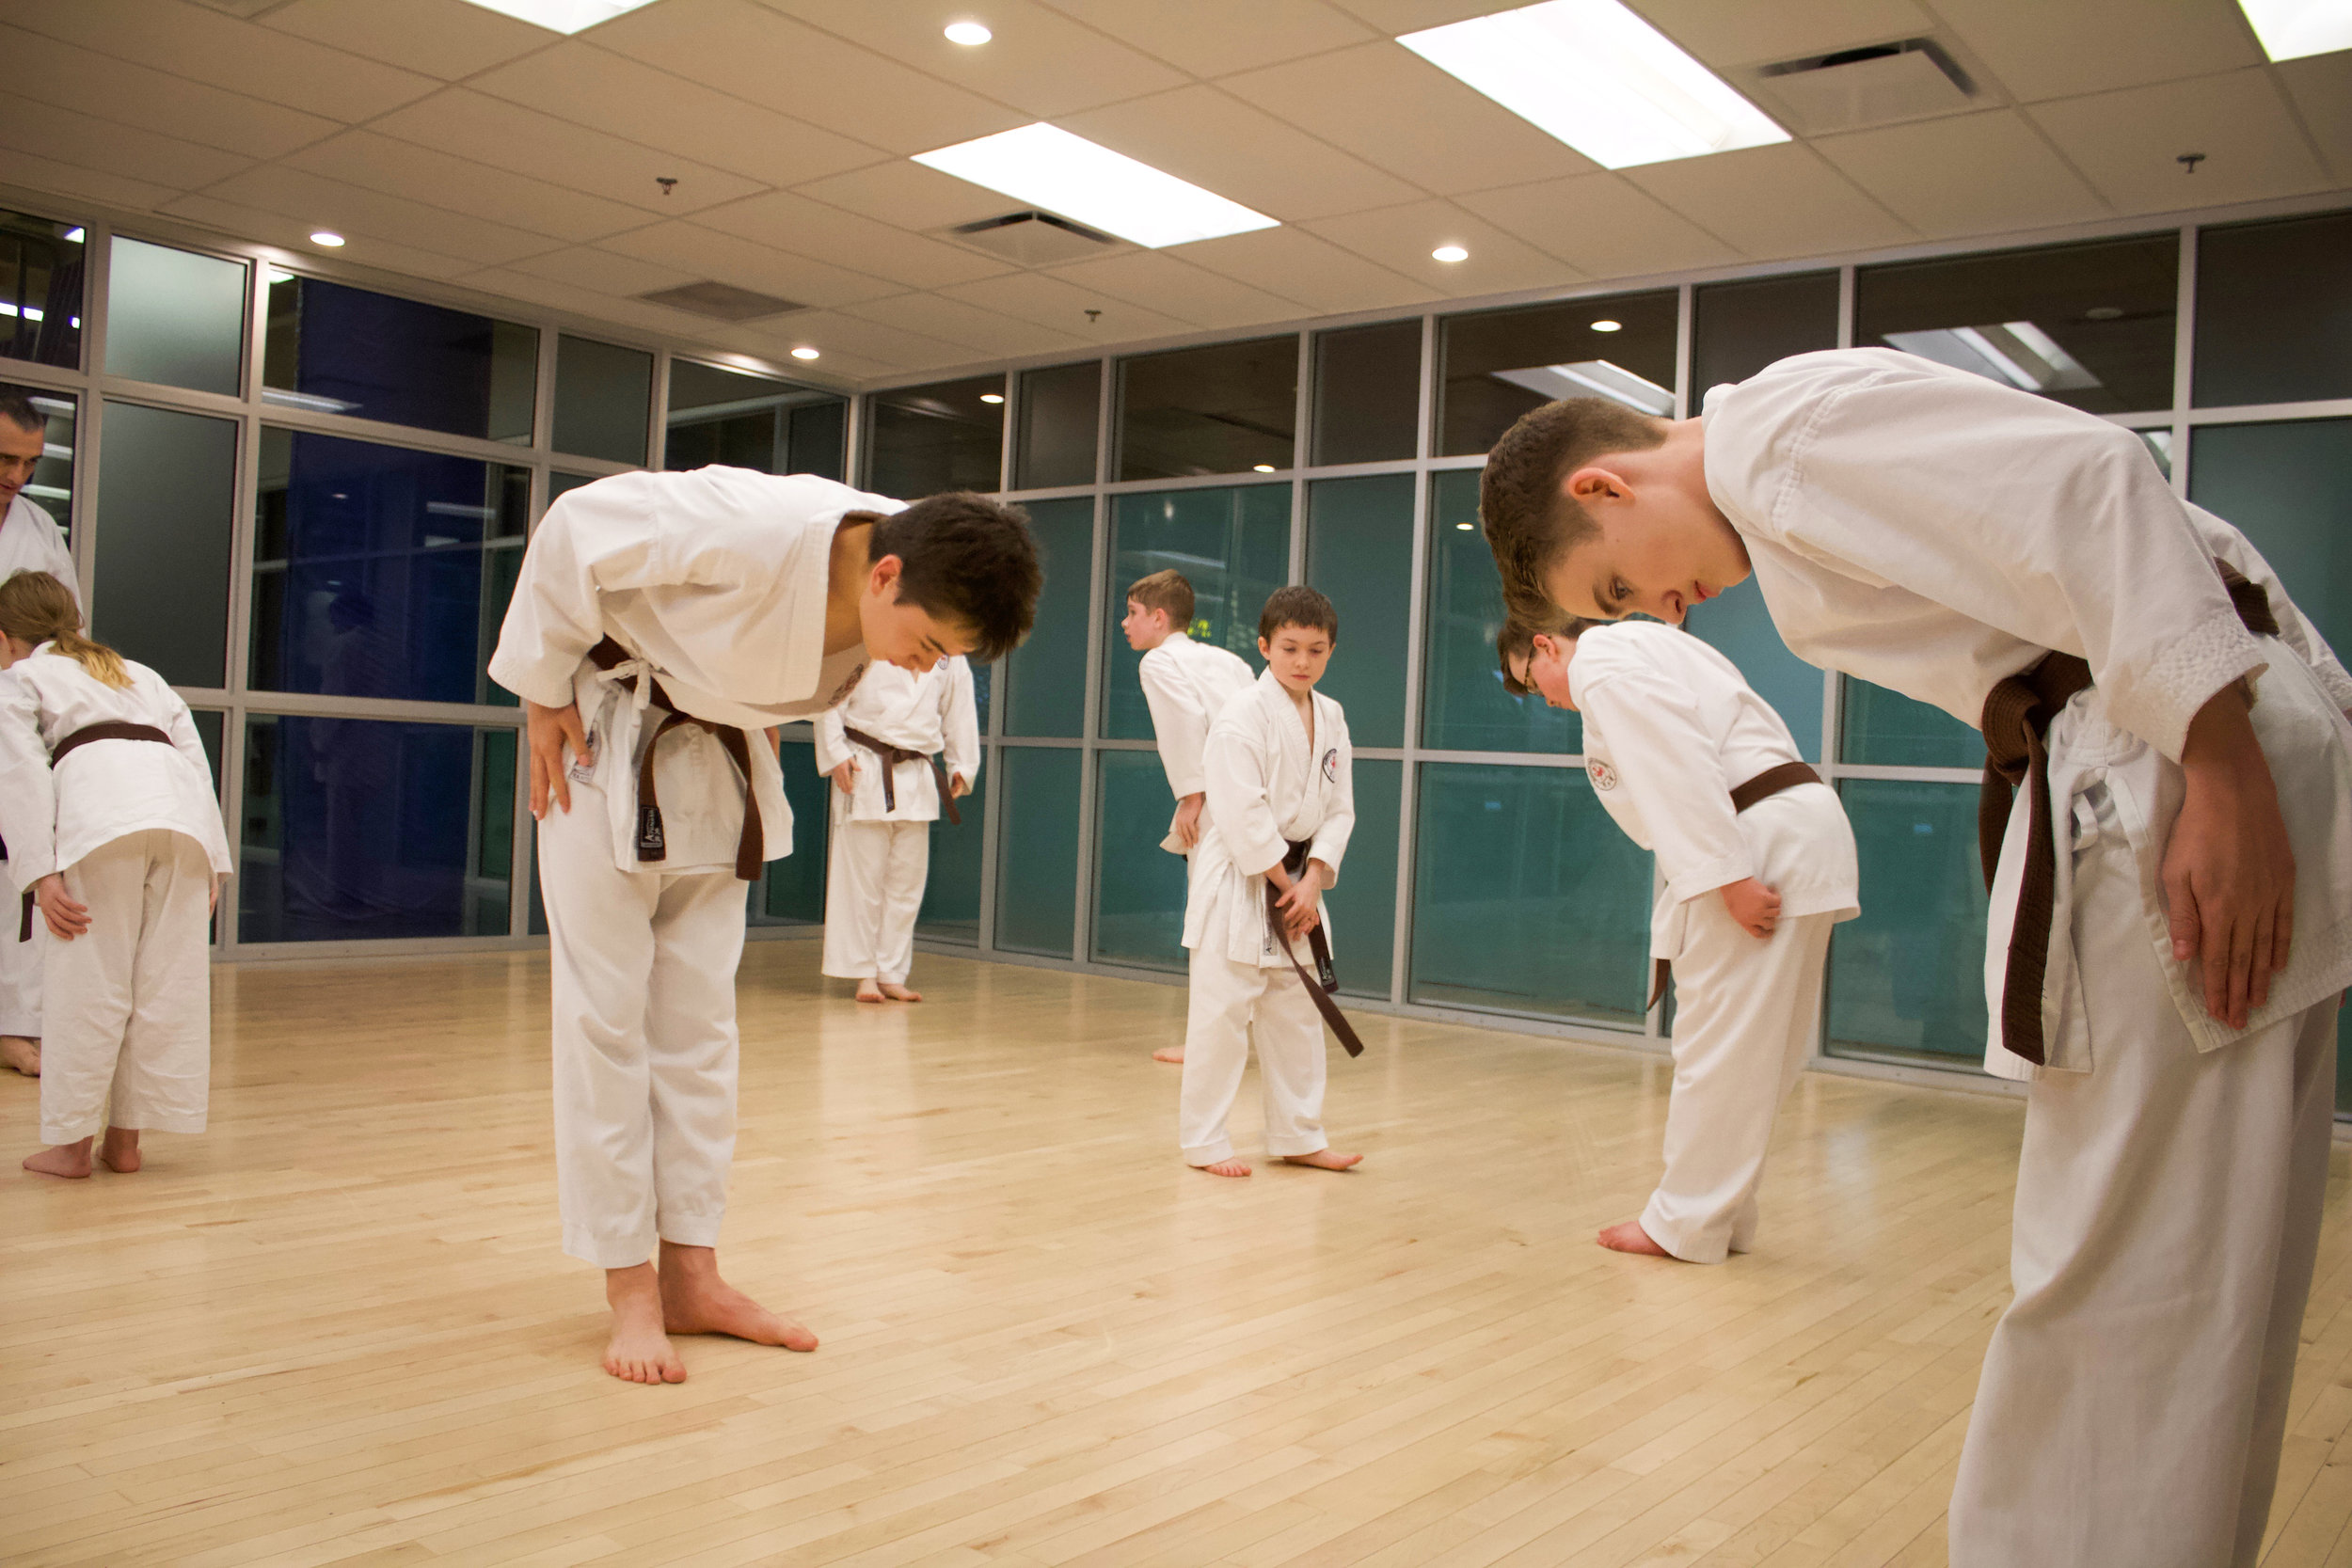 Niju Kun - In addition to the Dojo Kun, Master Gichin Funakoshi also outlined the twenty precepts of which ever student should strive to follow:1. Karate begins with a bow and finishes with a bow— Karate-do wa rei ni hajimari rei ni owaru koto a wasaru na2. In karate, never attack first— Karate ni sente nashi3. One who practices karate must follow the way of justice- Karate wa, gi no taske4. Know yourself first, then you can know others— Mazu onore o shire, shikashite ta o shire5. Spirit and mind is more important than technique— Gijitsu yori shinjitsu